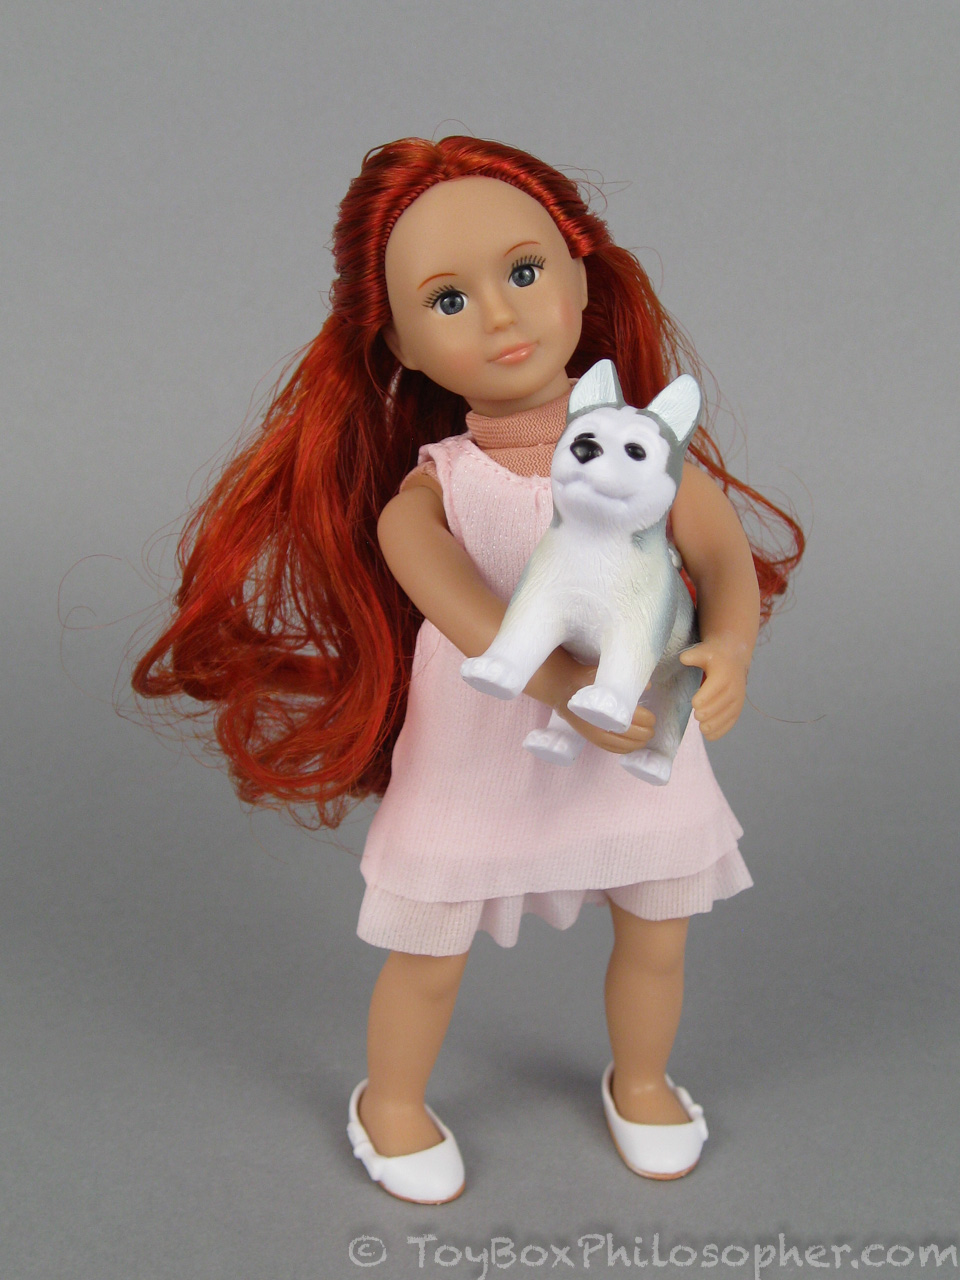 Lori Dolls And Accessories From Our Generation The Toy